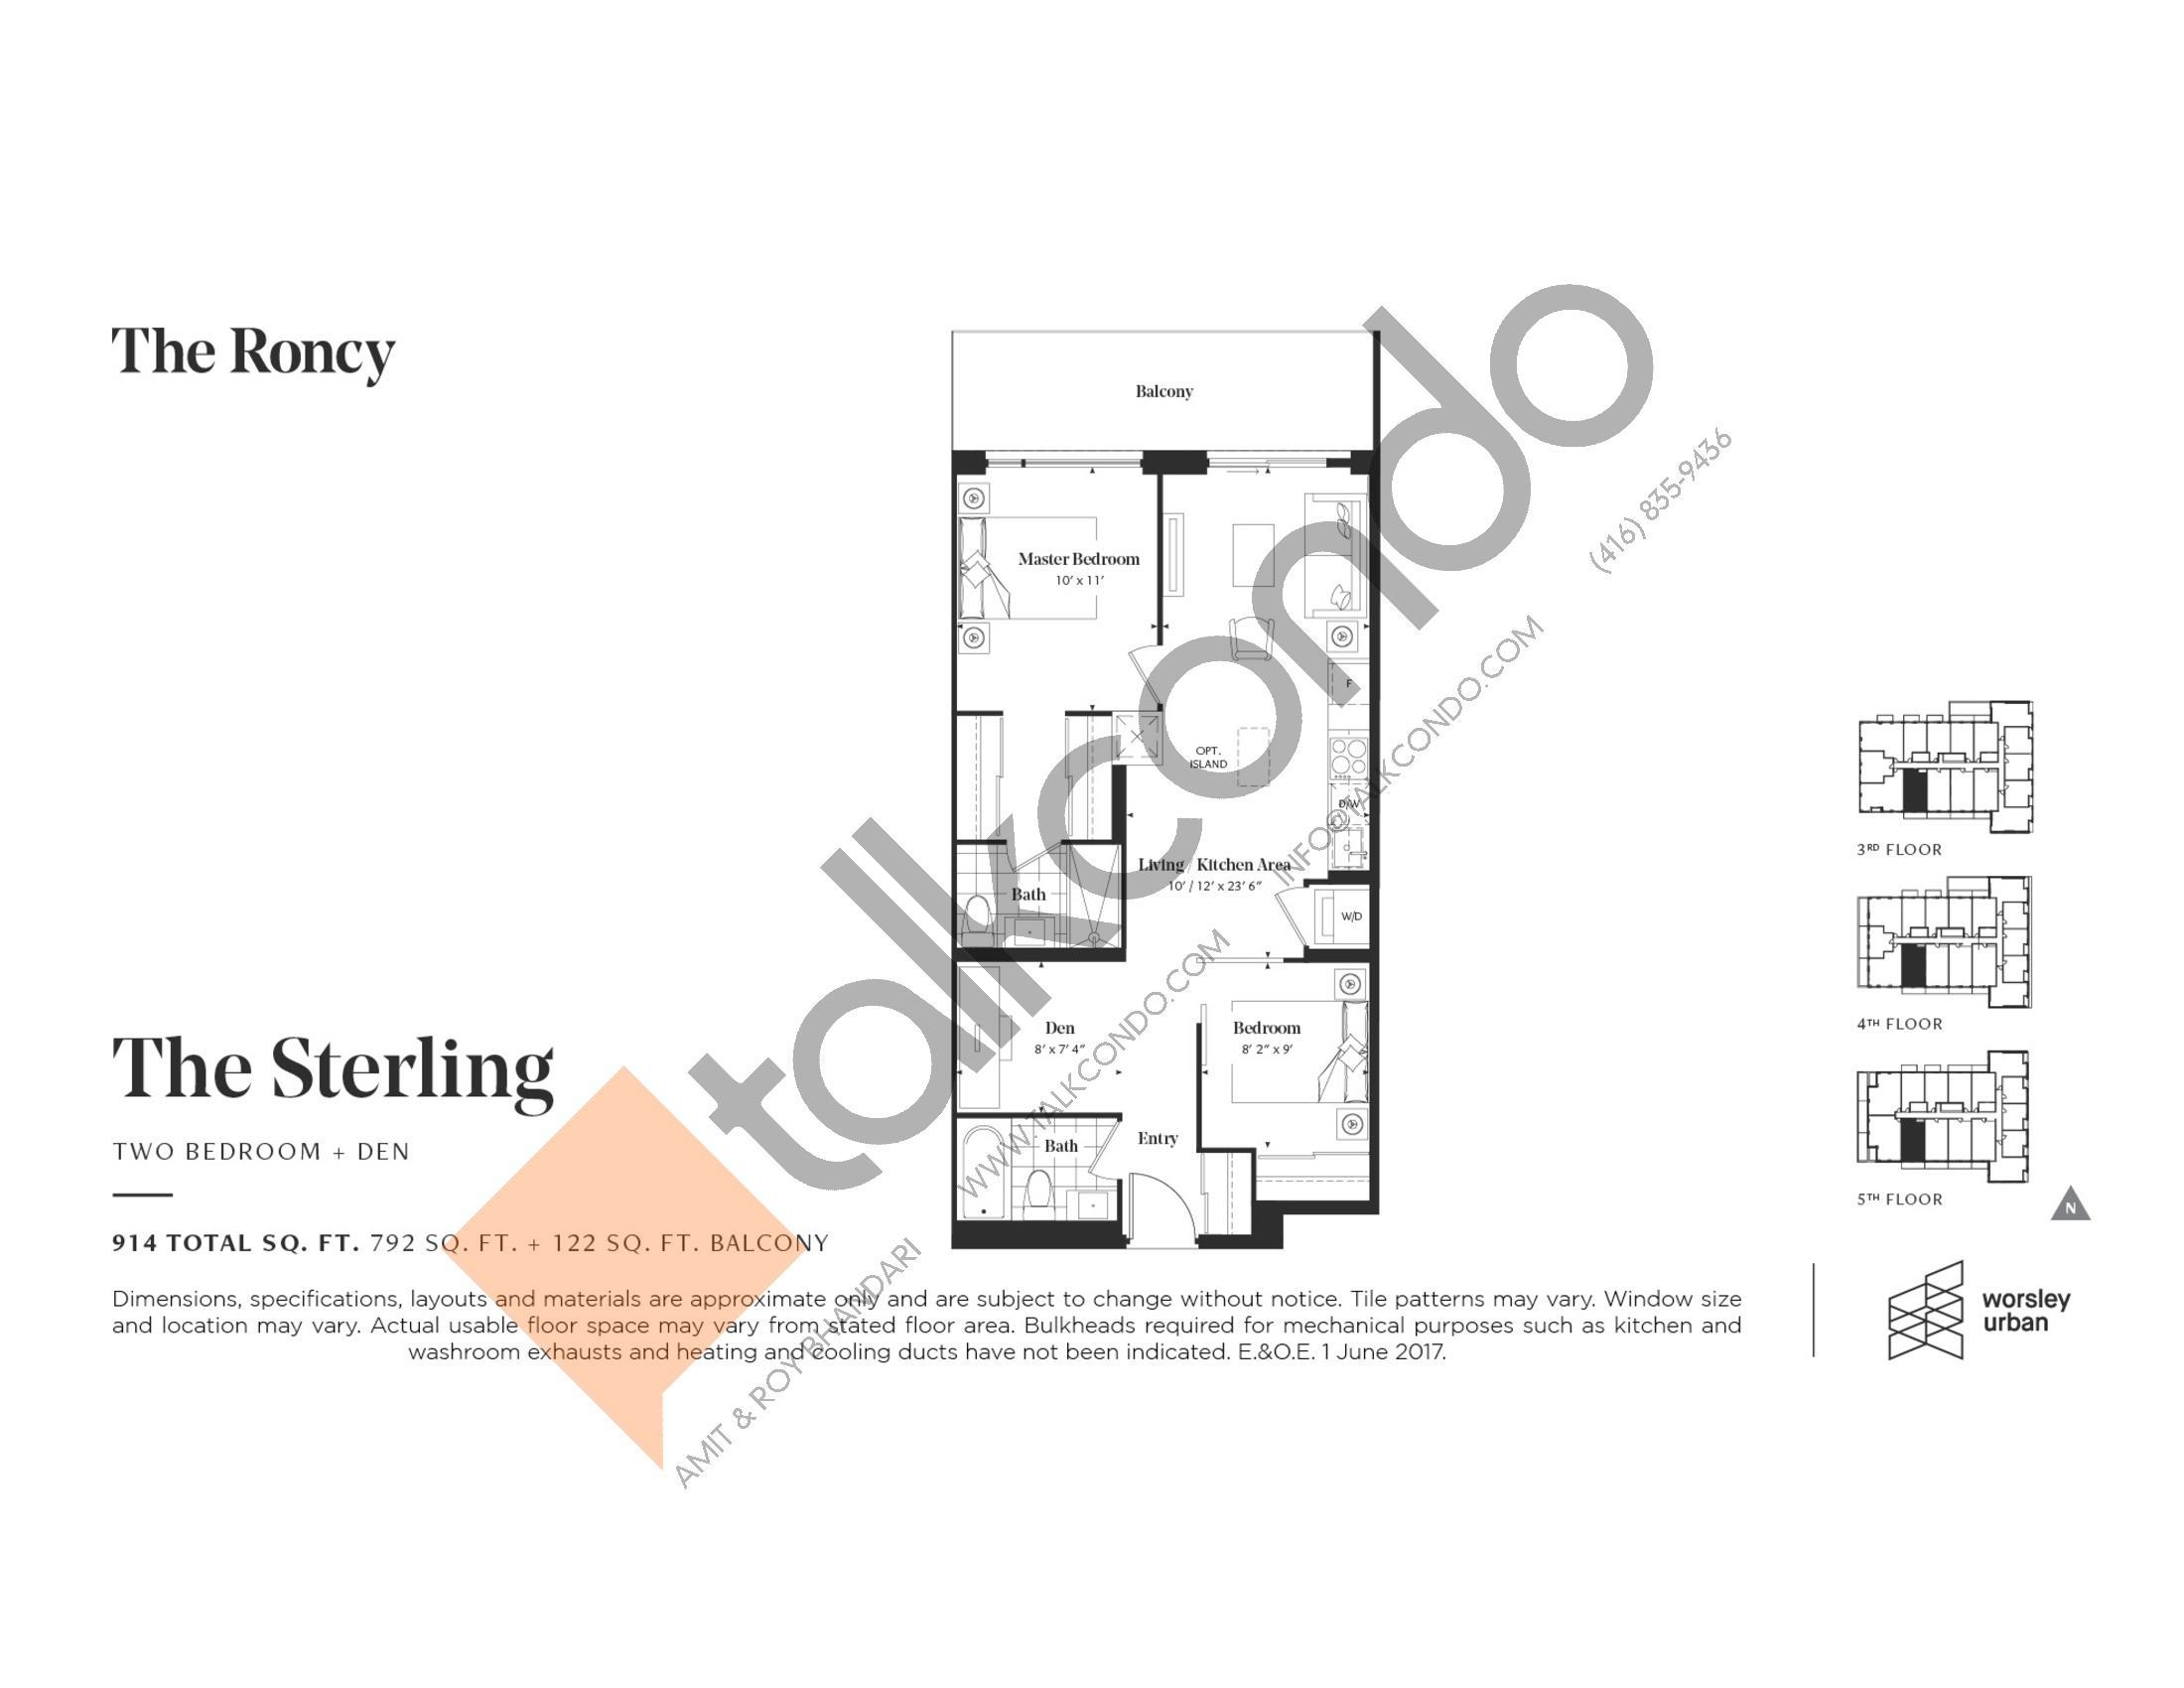 The Sterling Floor Plan at The Roncy Condos - 792 sq.ft